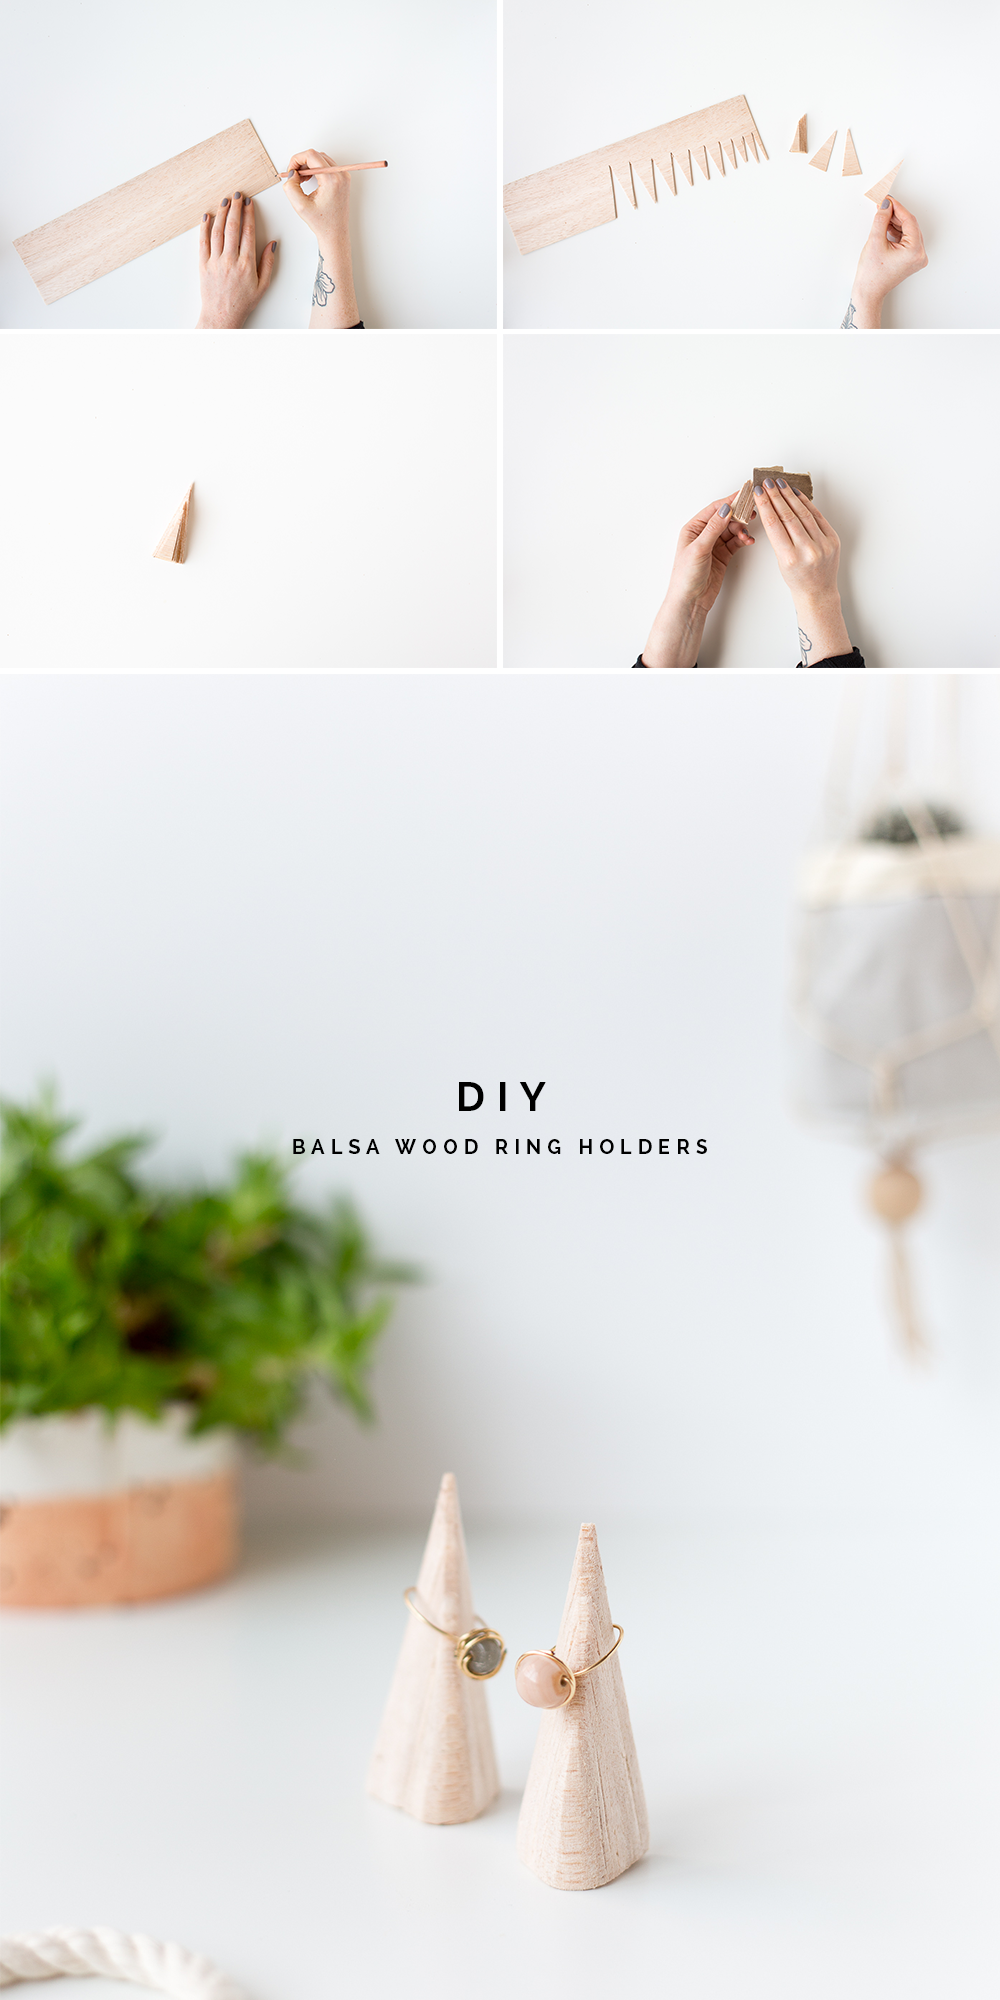 DIY-Balsa-Wood-Ring-Holders-tutorial-_-@fallfordiy-1